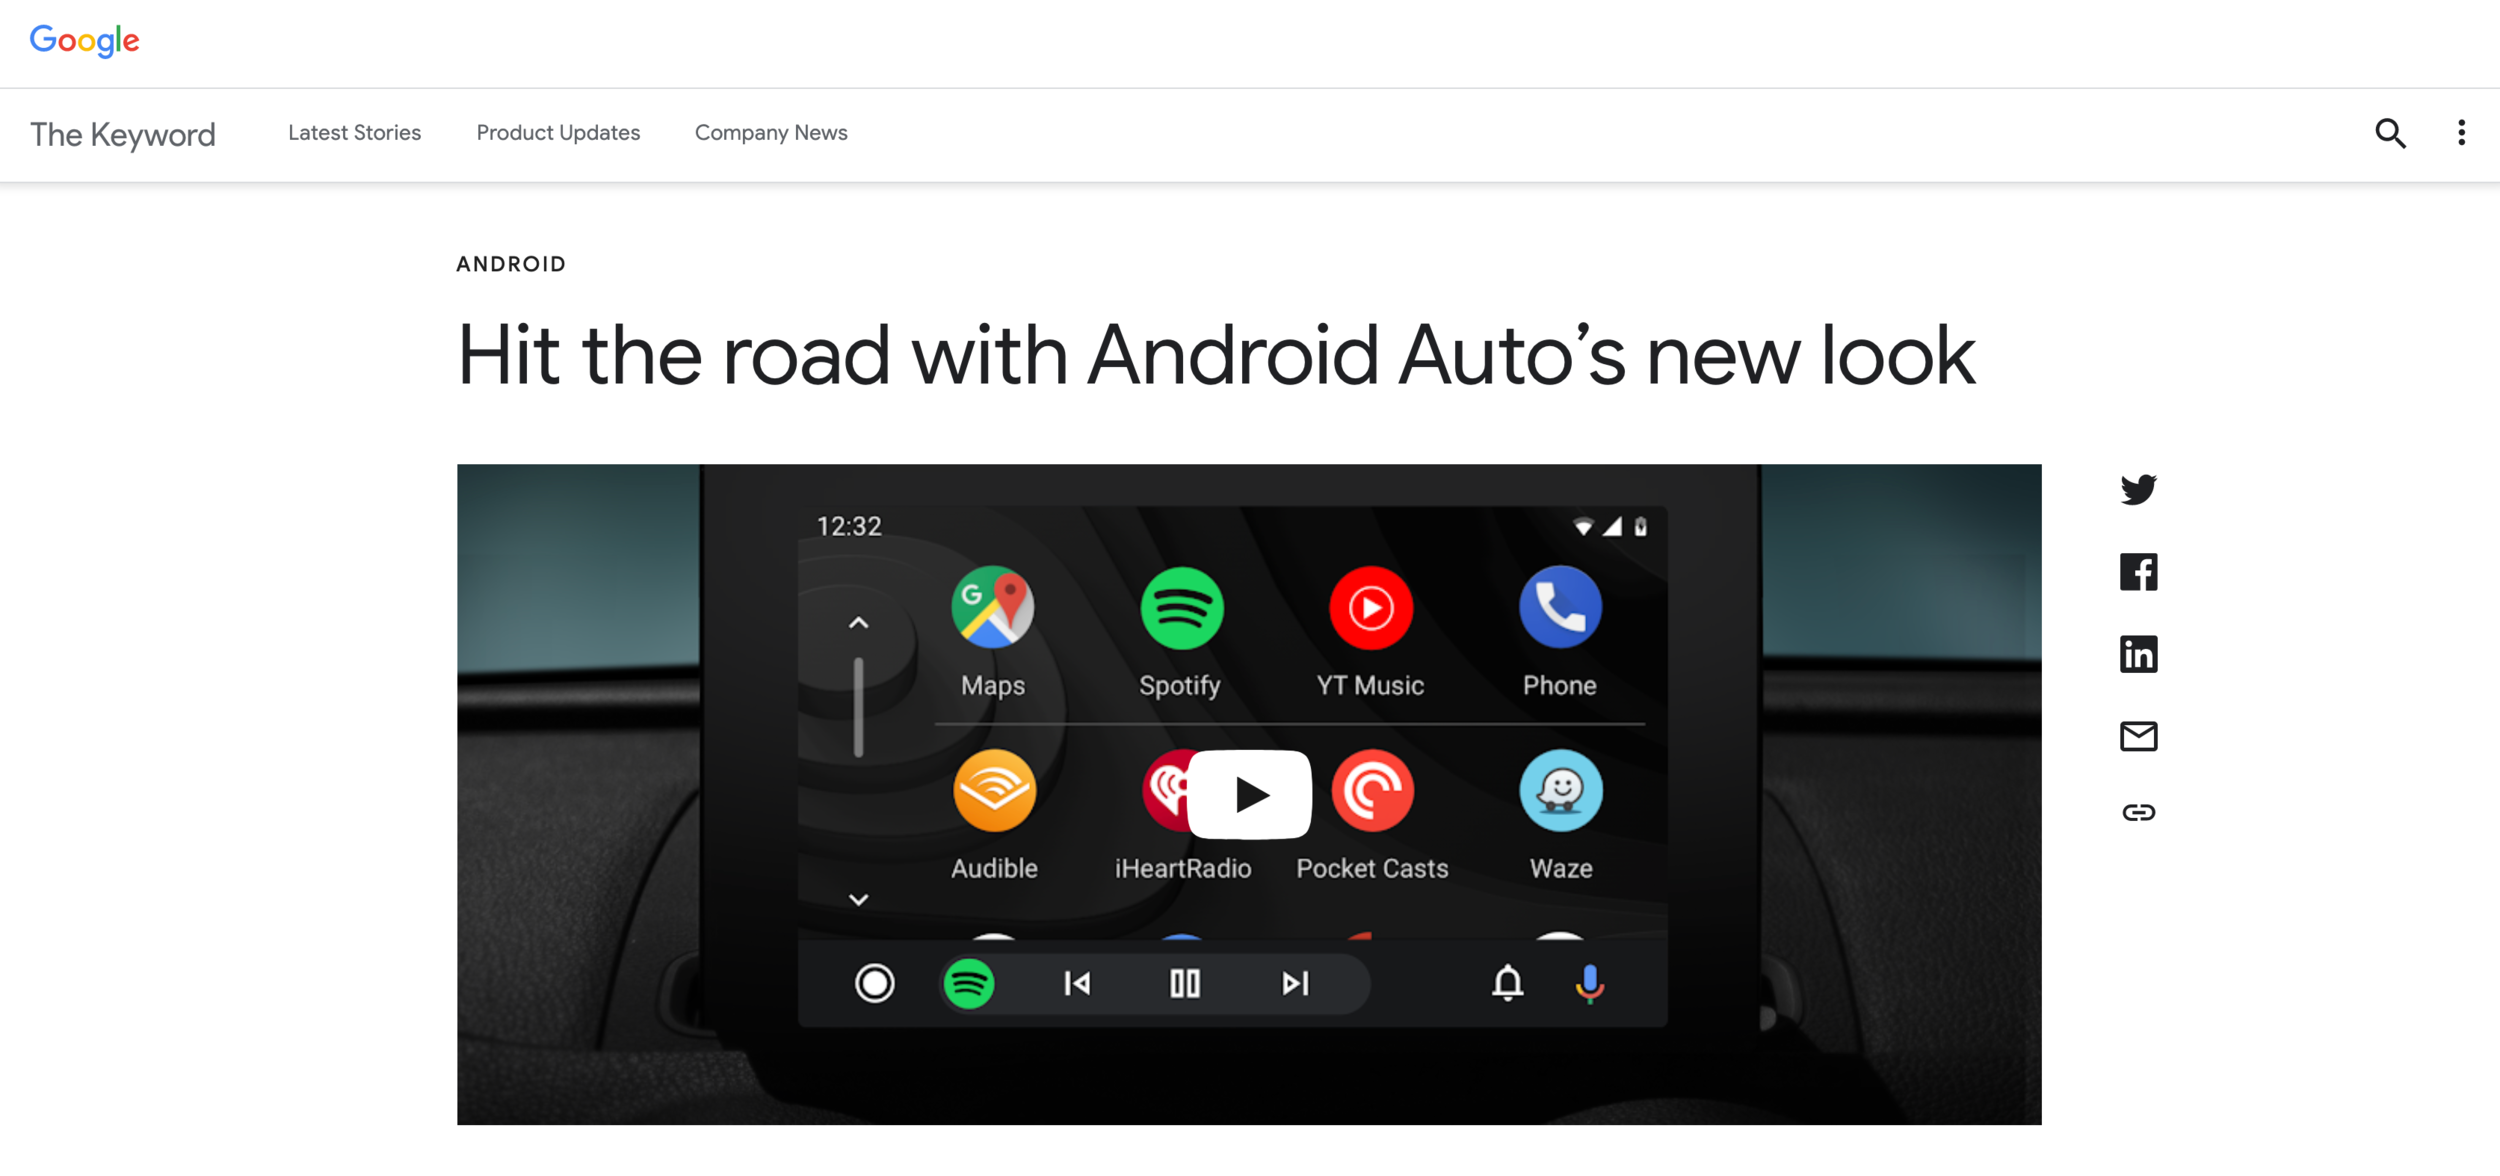 android-android-auto-new-look.png